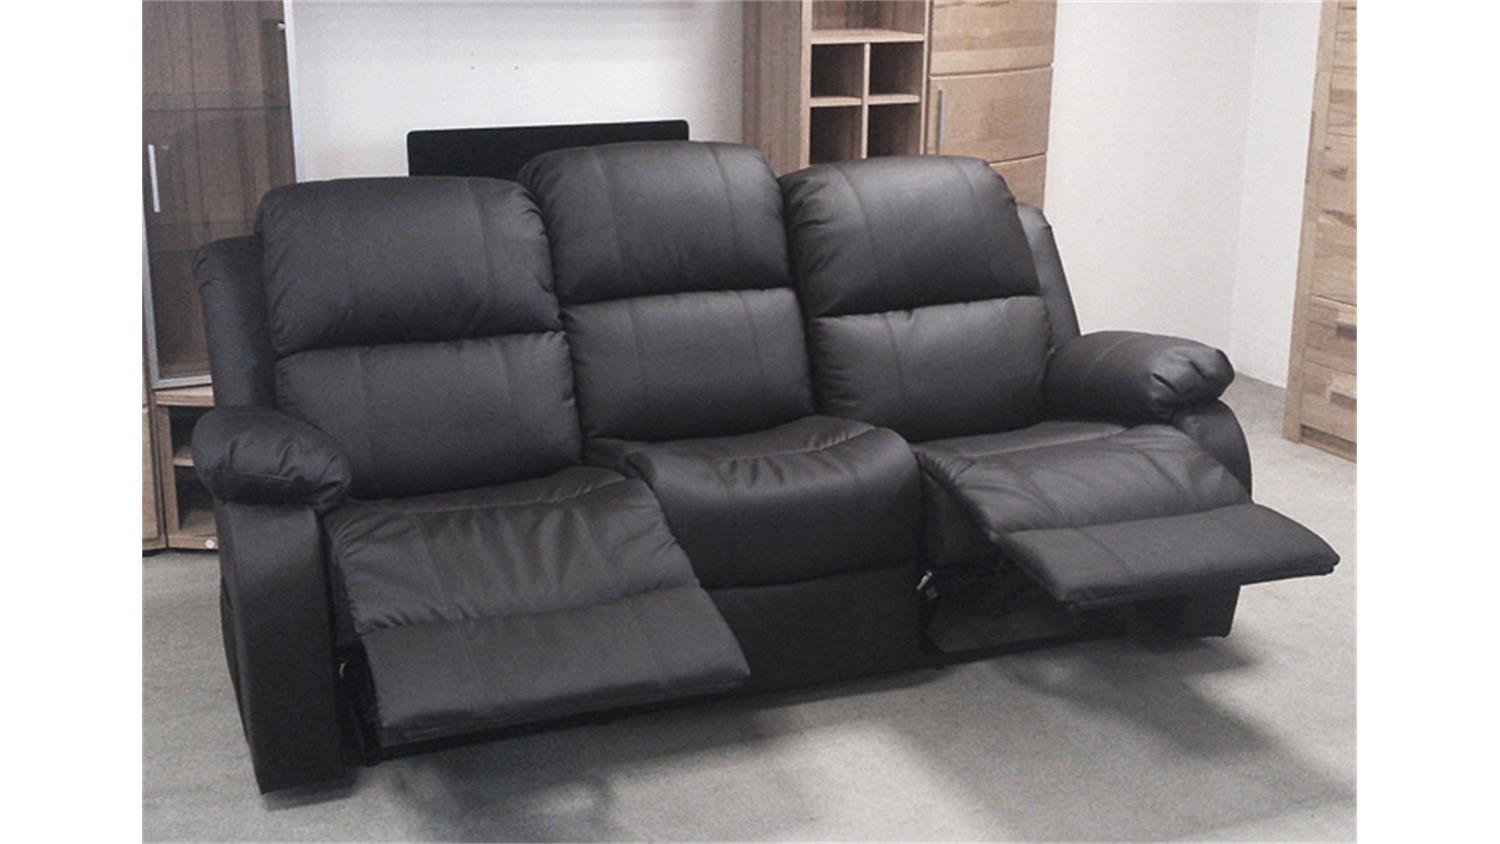 ledersofa schwarz sofa schwarz ikea leder mit und einer basis von material im konzept der with. Black Bedroom Furniture Sets. Home Design Ideas